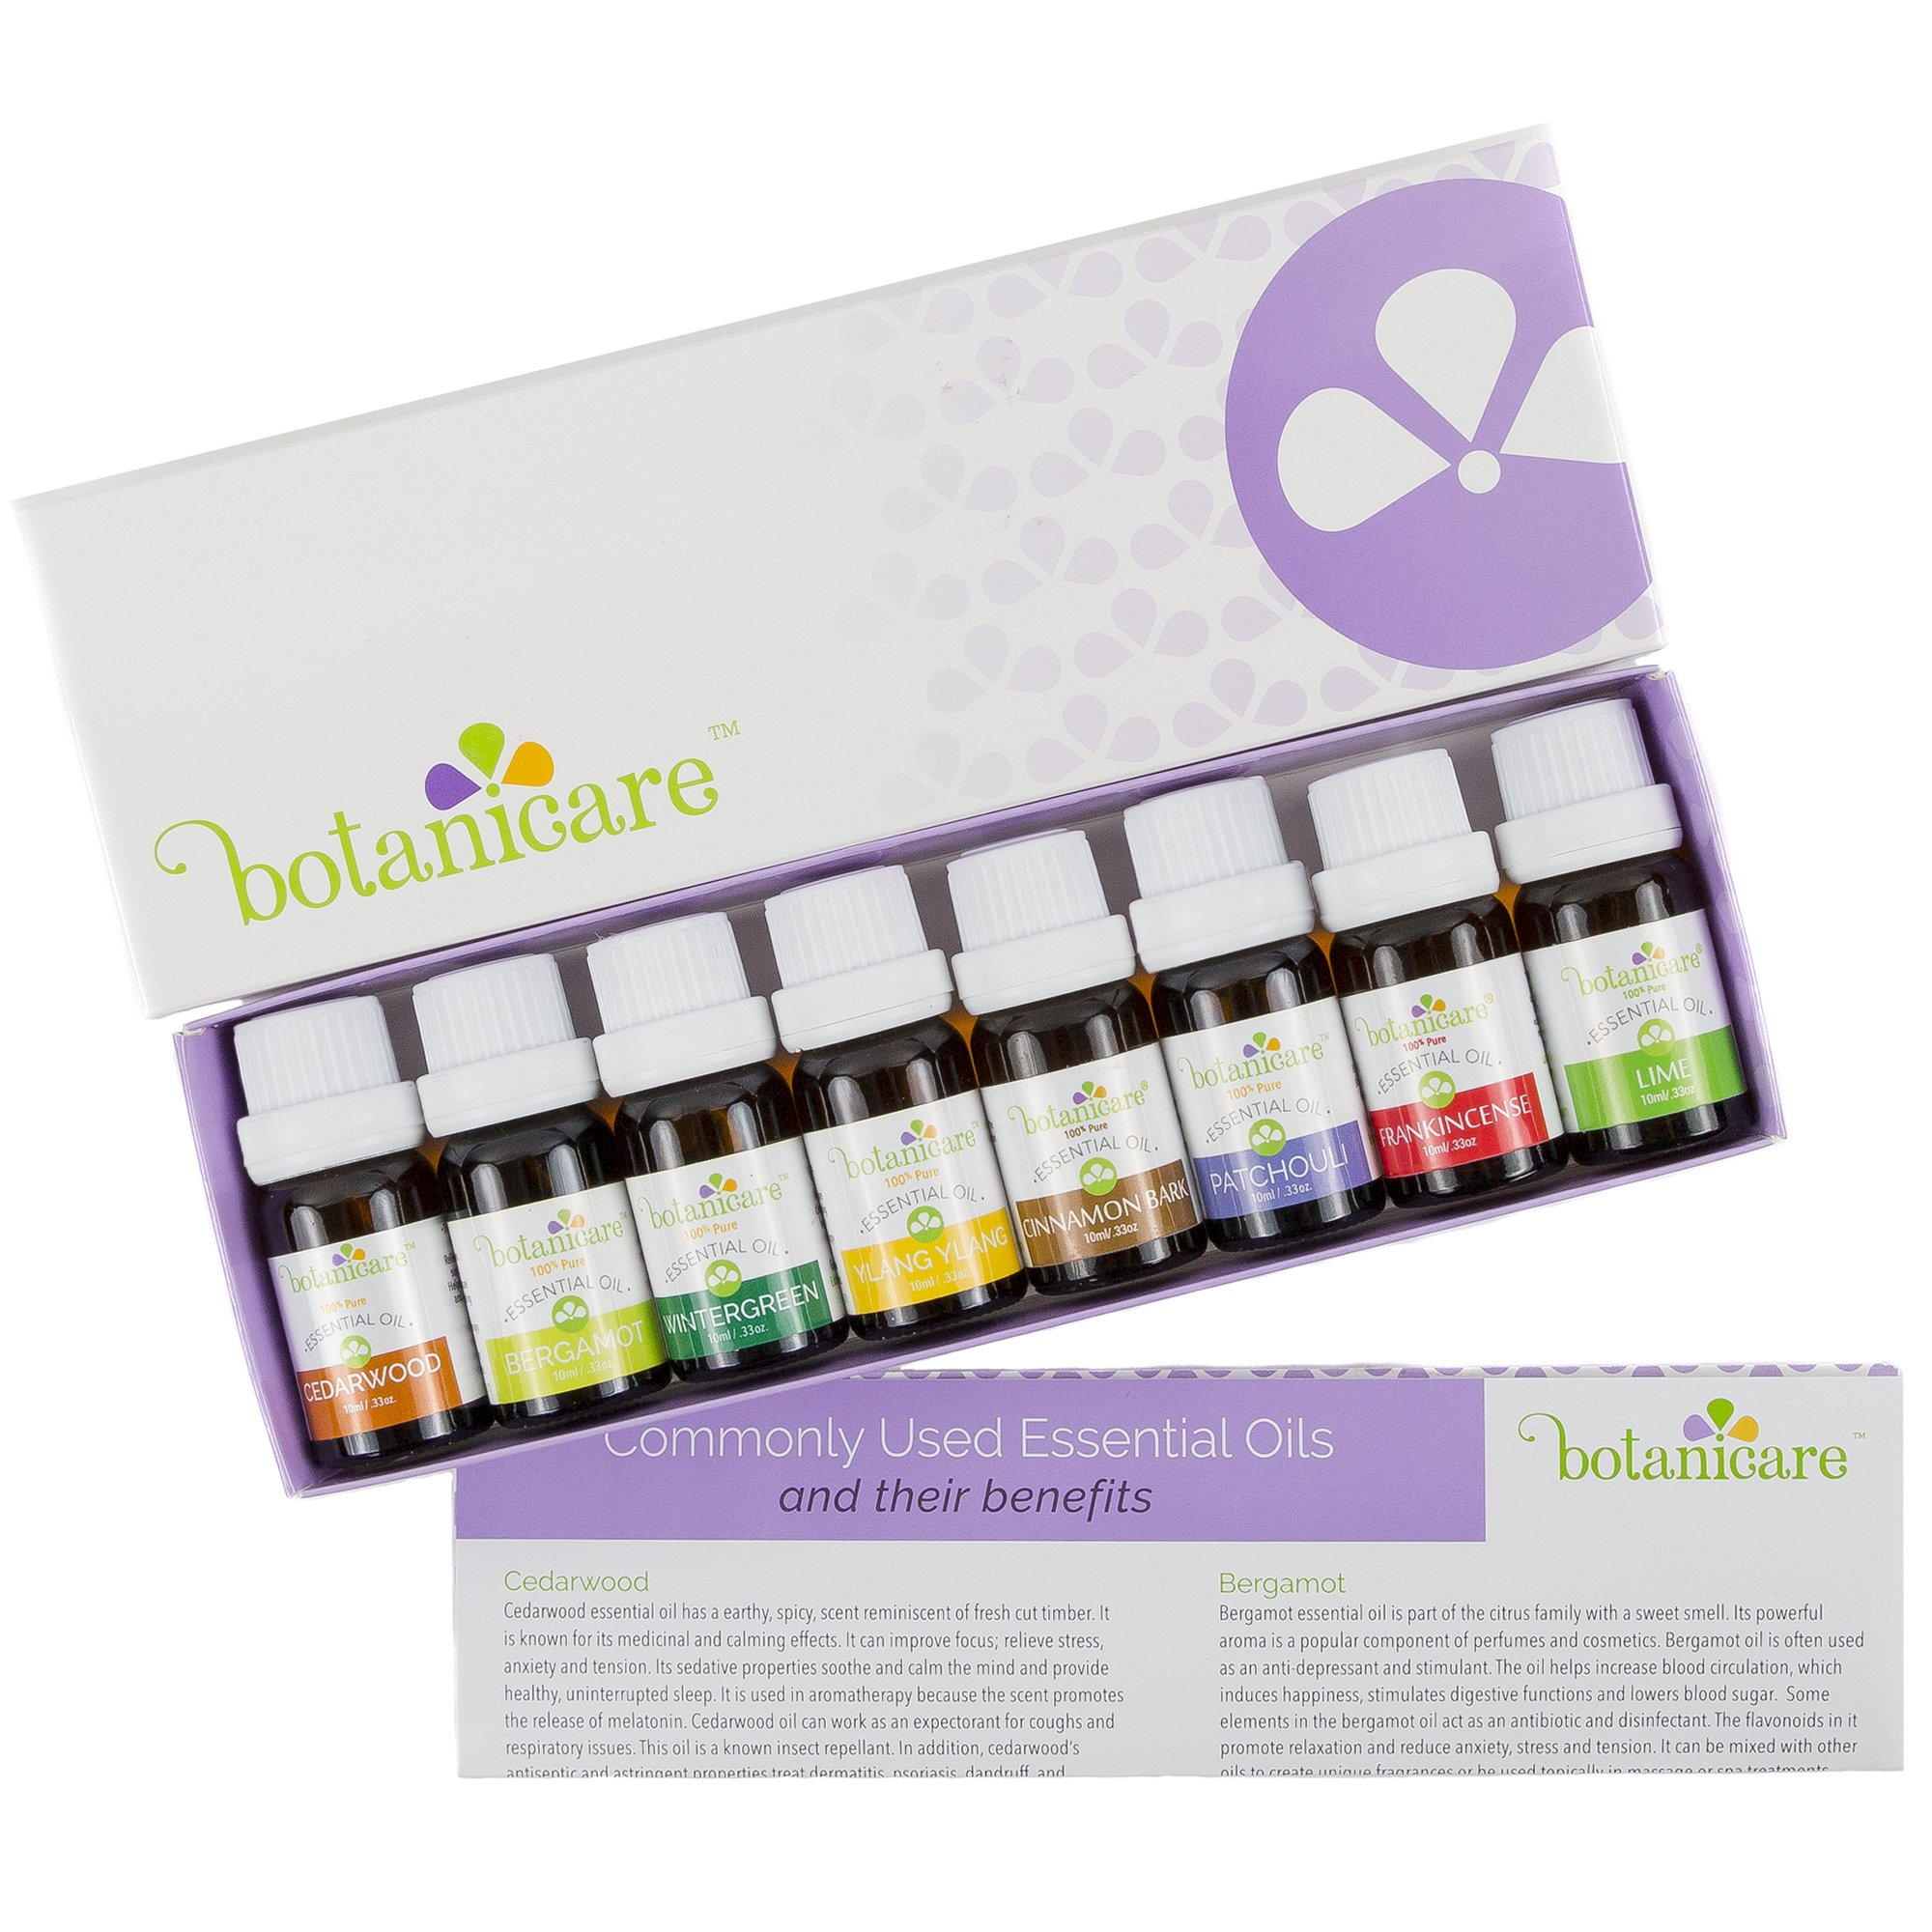 Essential Oils Aromatherapy Kit, 8 10ml bottles Great for Aromatherapy Diffuser Oil, Diffuser Bracelet, or making Bath Bombs. Perfect Gift Set Cedarwood, Rosewood, Wintergreen, Bergamot, Ylang Ylang.